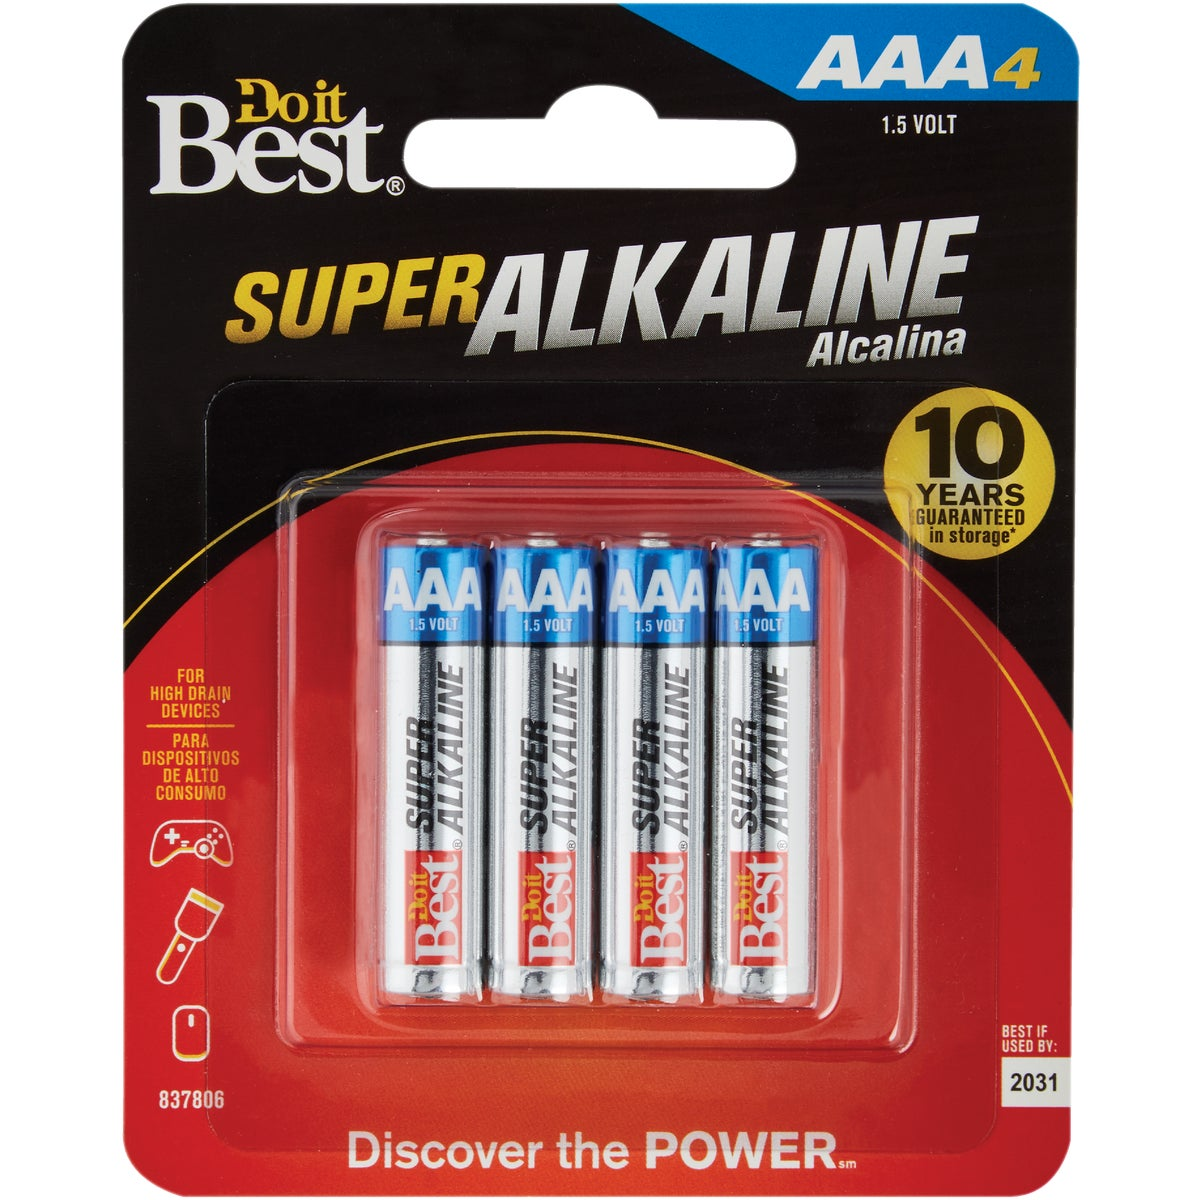 4PK DIB AAA ALK BATTERY - DIB824-4 by Ray O Vac